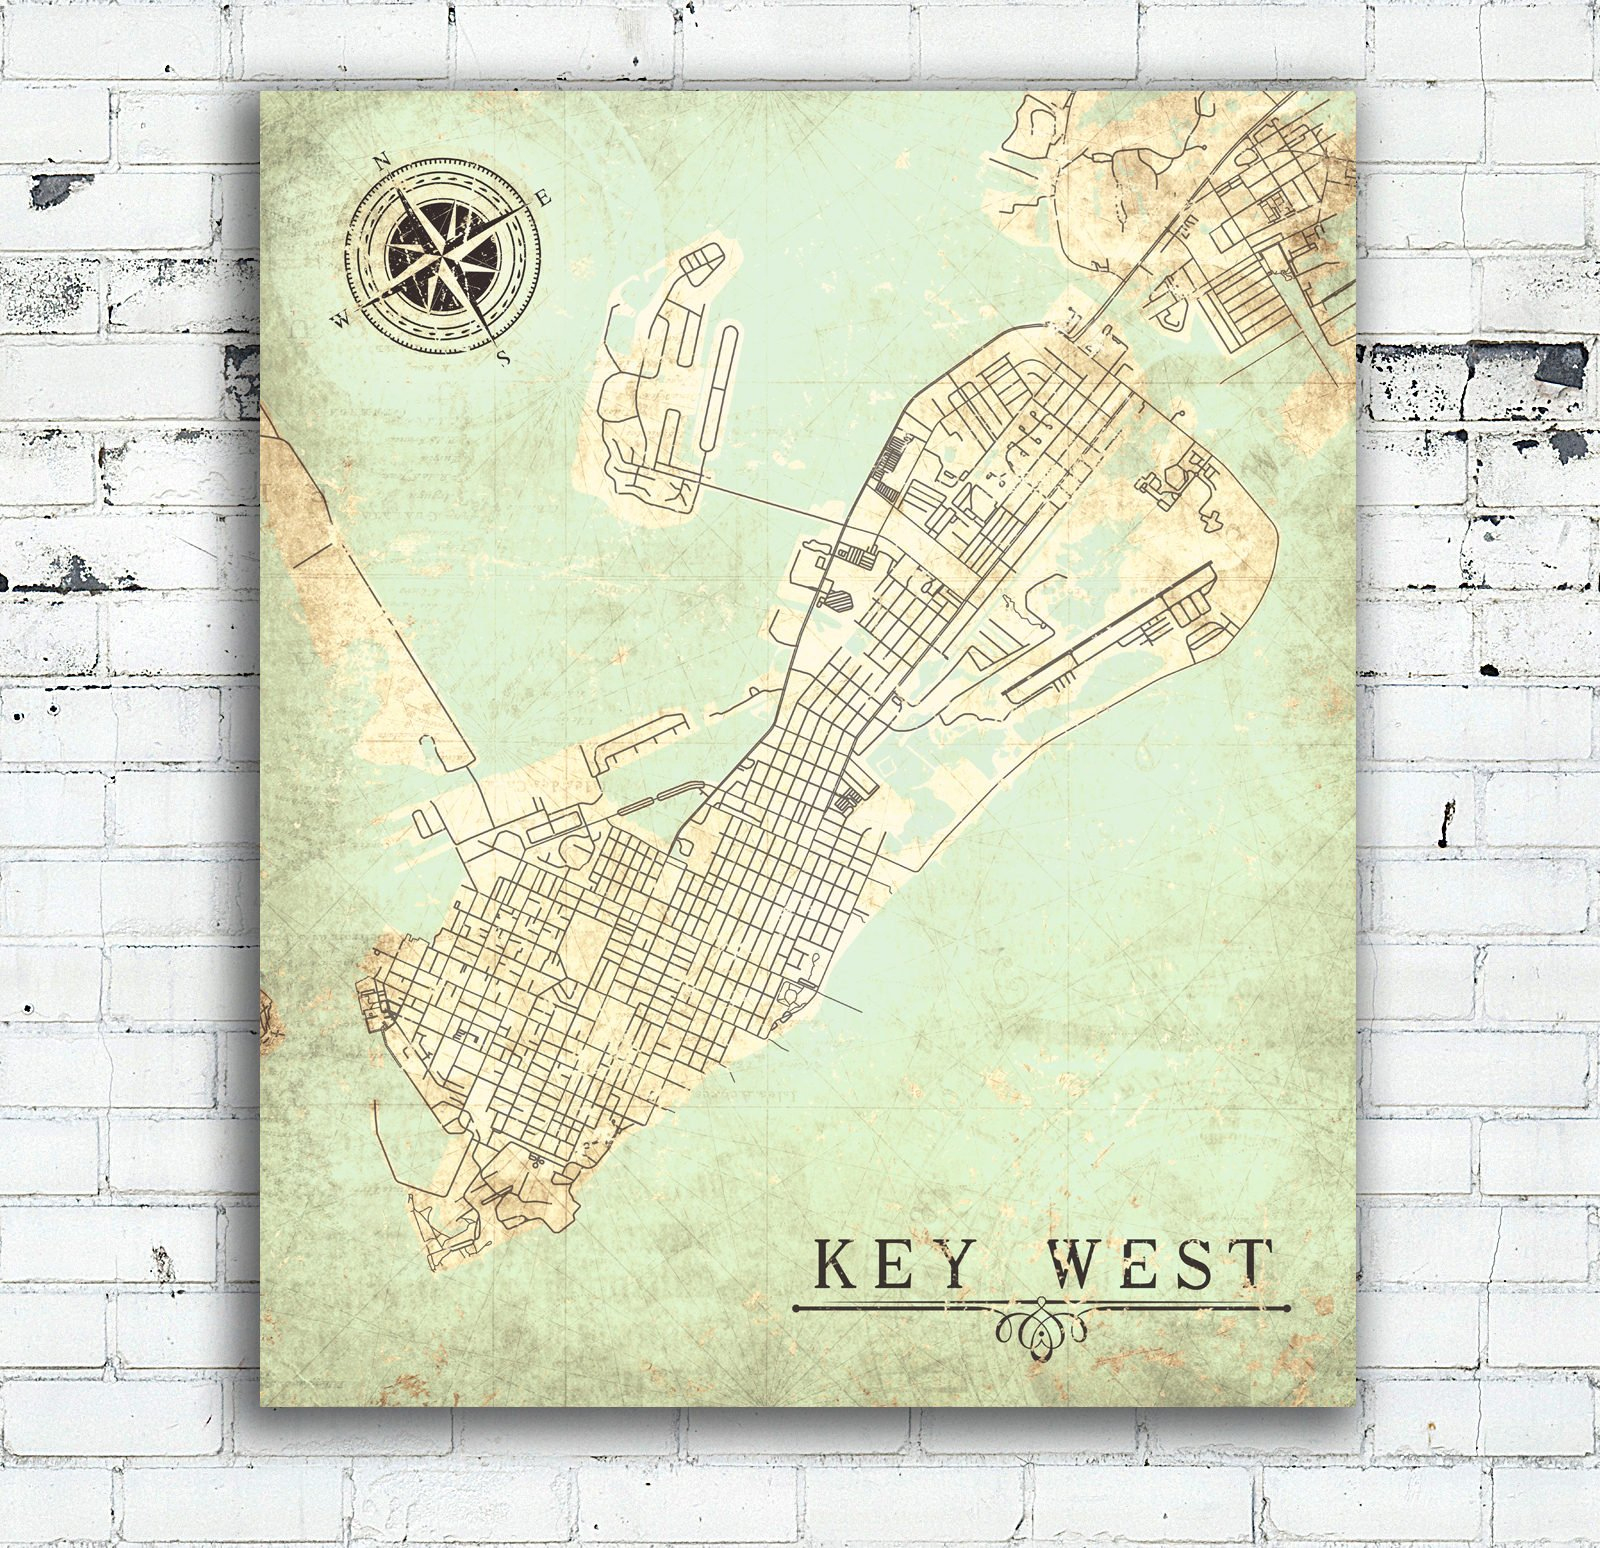 Key West Fl Canvas Print Florida Keys Fl Vintage Map City Plan Map - Florida Keys Map Poster